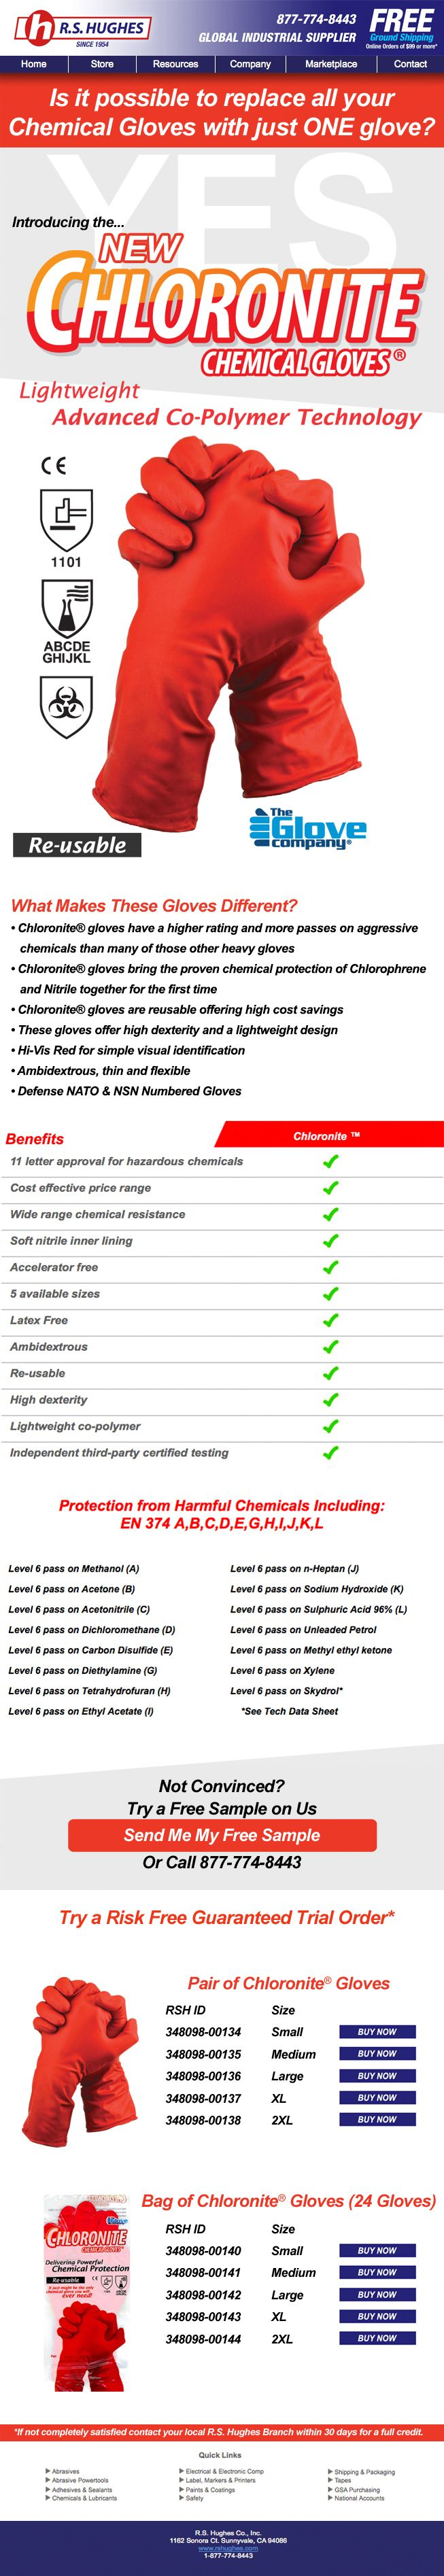 One chemical Glove can replace all chemical gloves and that glove is the New Chloronite Chemical Gloves. These new ambidextrous high dexterity, lightweight gloves have a higher rating and passes on aggressive chemicals than many of those other heavy gloves. Proven chemical protection of Chlorophrene and Nitrile together for the first time, are reusable offering high cost savings, and are Hi-Vis Red for simple visual identification. No Matter the application these gloves can stand up to the…